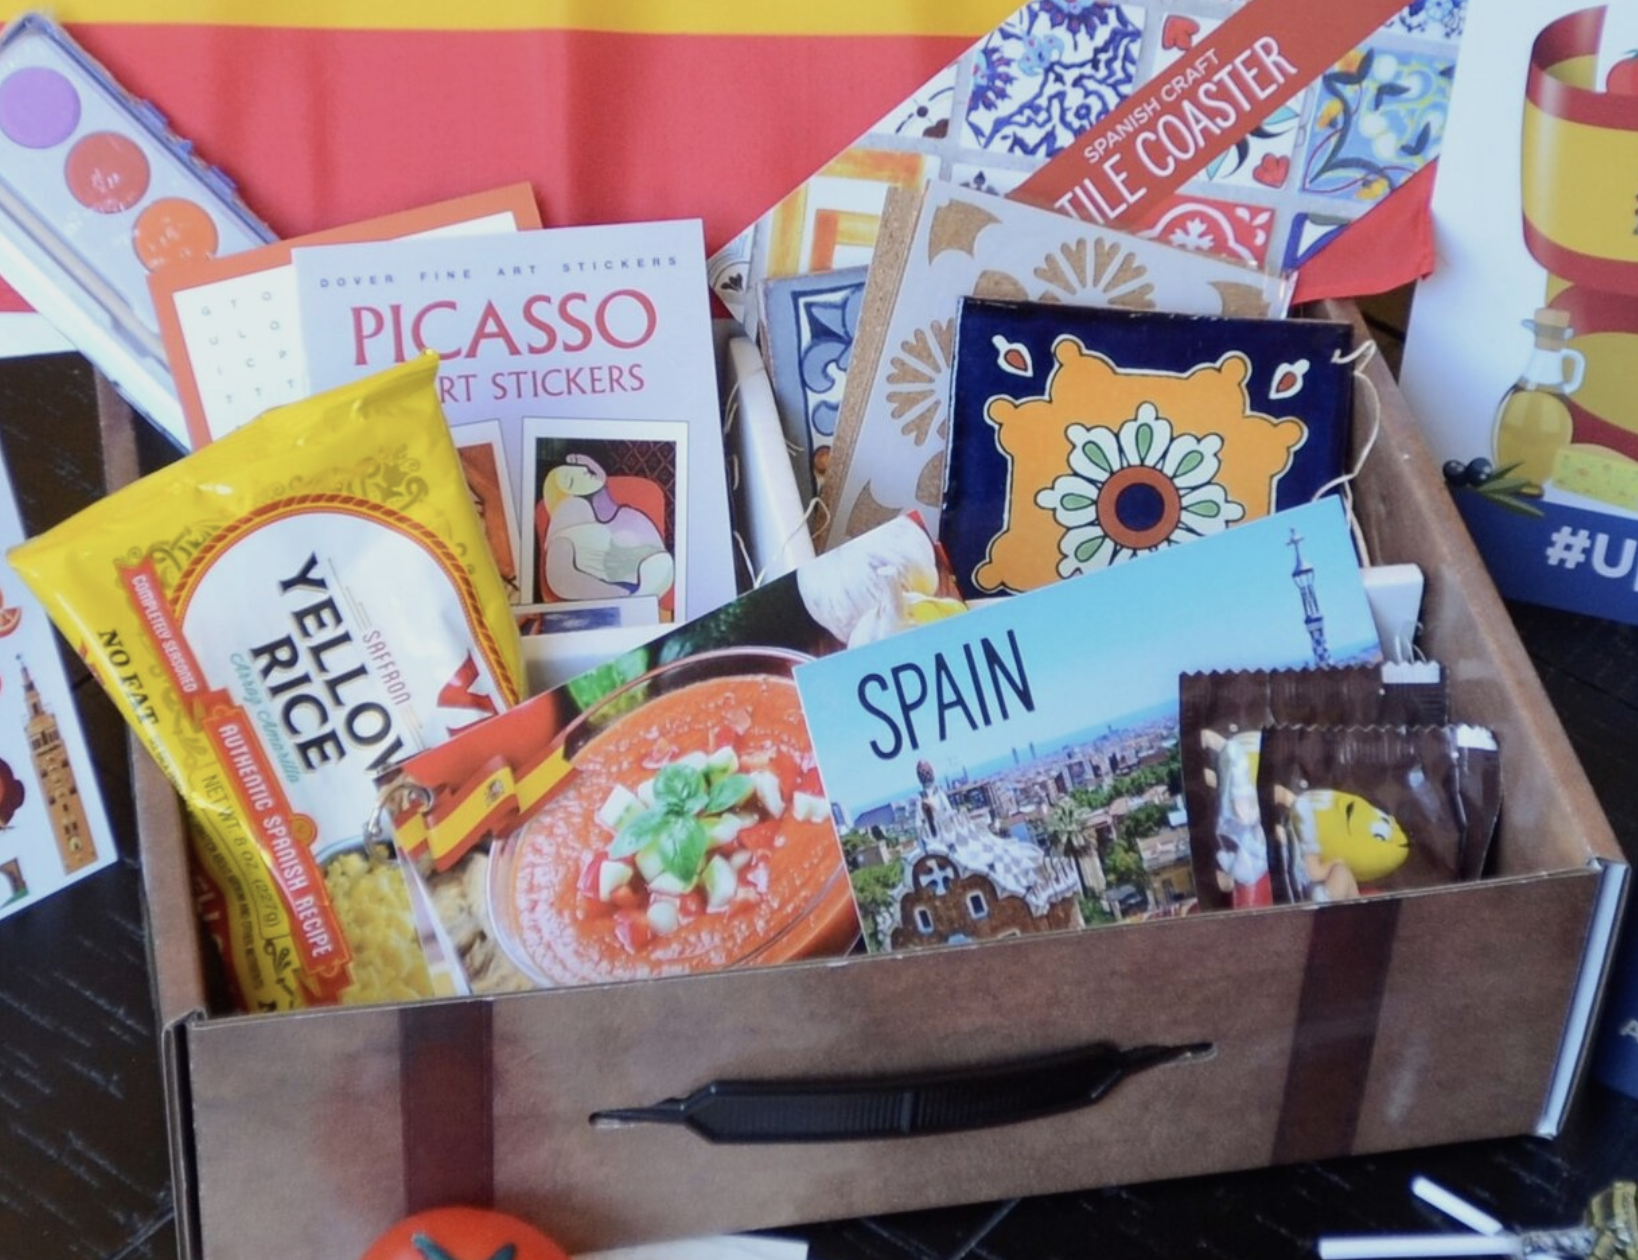 A wooden suitcase-looking box holds a variety of objects from Spain including art, a postcard, yellow rice, m&ms, and a picasso sticker book